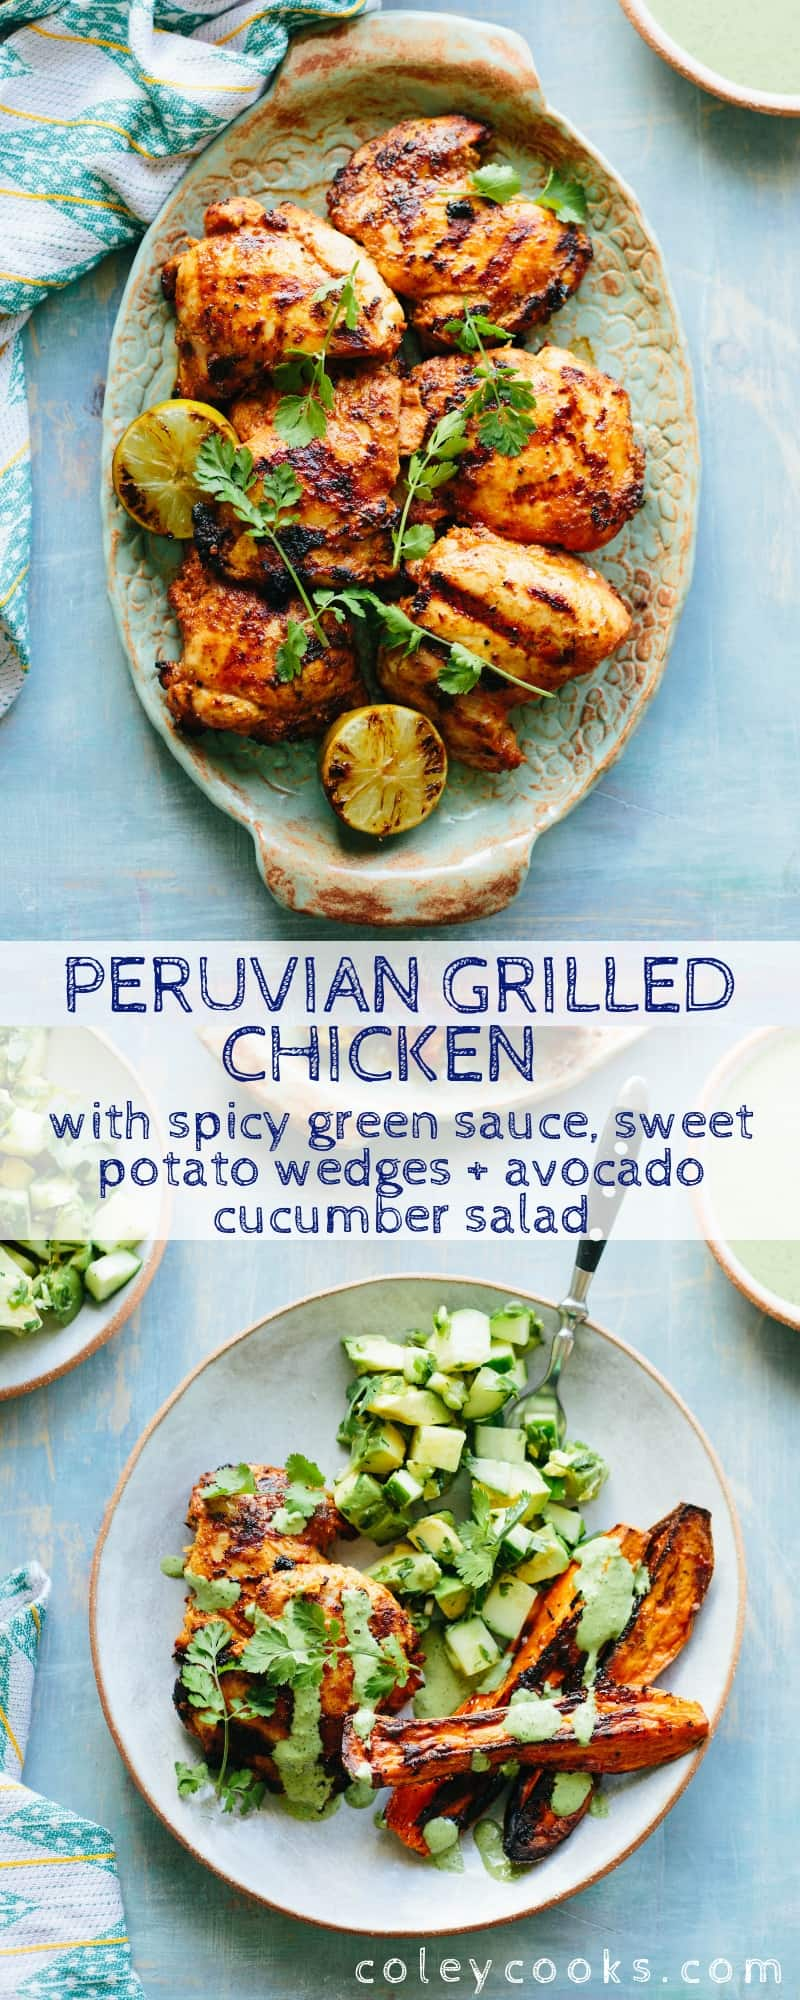 This recipe for Peruvian Grilled Chicken with Spicy Green Sauce, Sweet Potato Wedges + Avocado Cucumber Salad is a healthy, flavorful summer dinner. Paleo, gluten free, dairy free and nut free. #easy #grilled #chicken #recipe #healthy | ColeyCooks.com